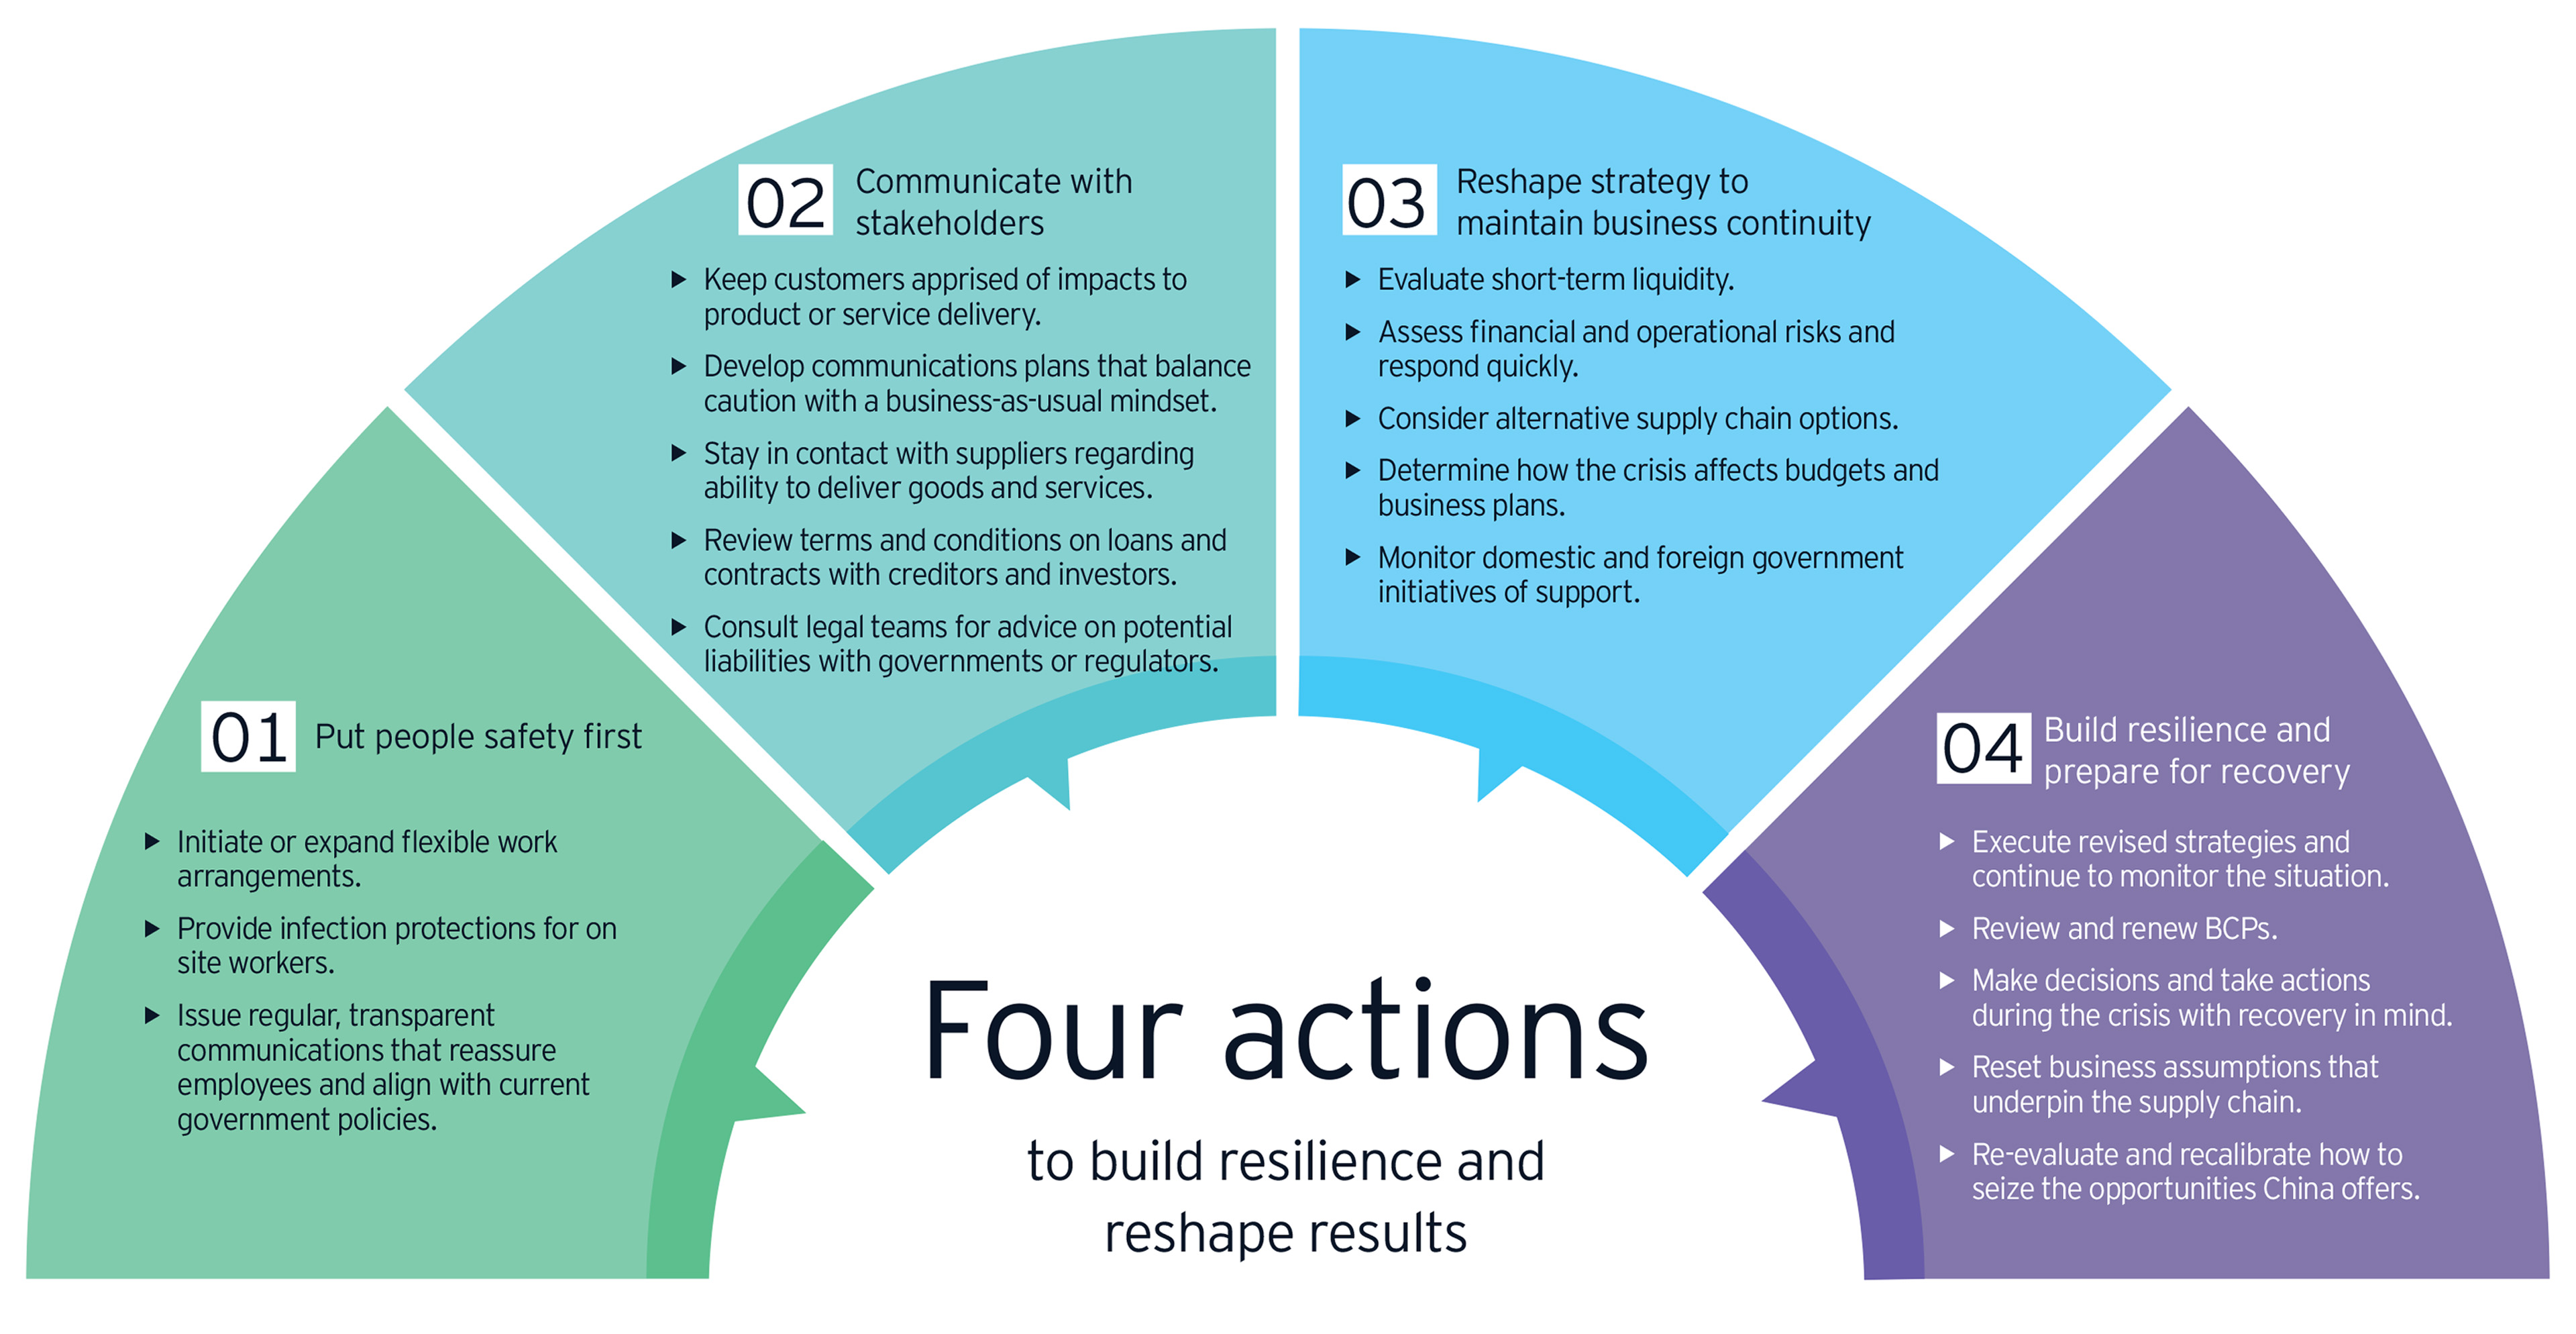 Four actions to build resilience and reshape results